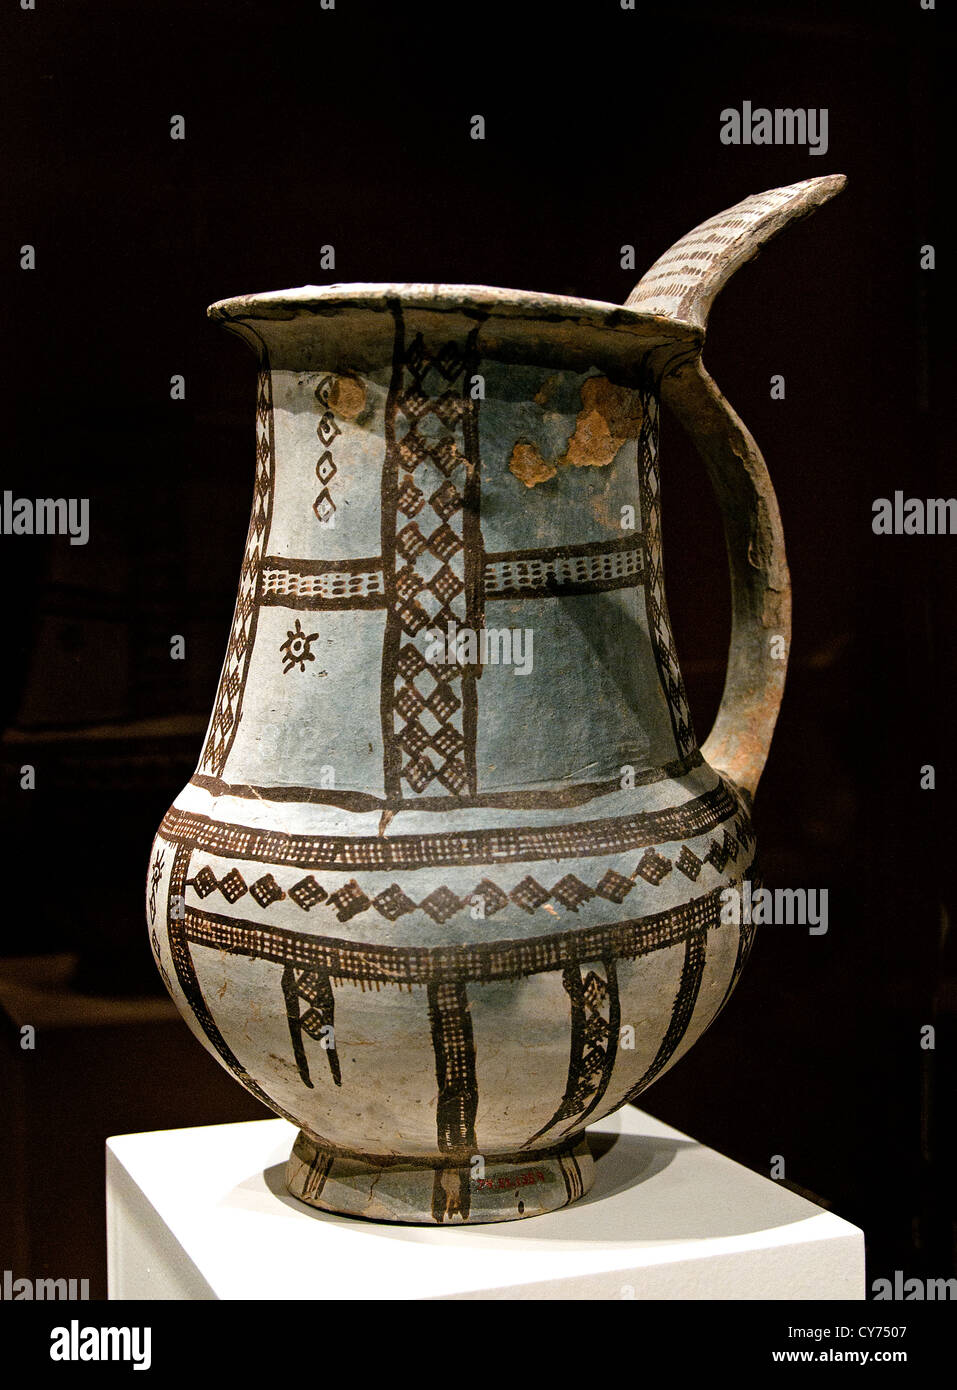 Tankard Terracotta late  Cypriot I white slip  I ware 1600 - 1450 Cyprus Greek Greece - Stock Image